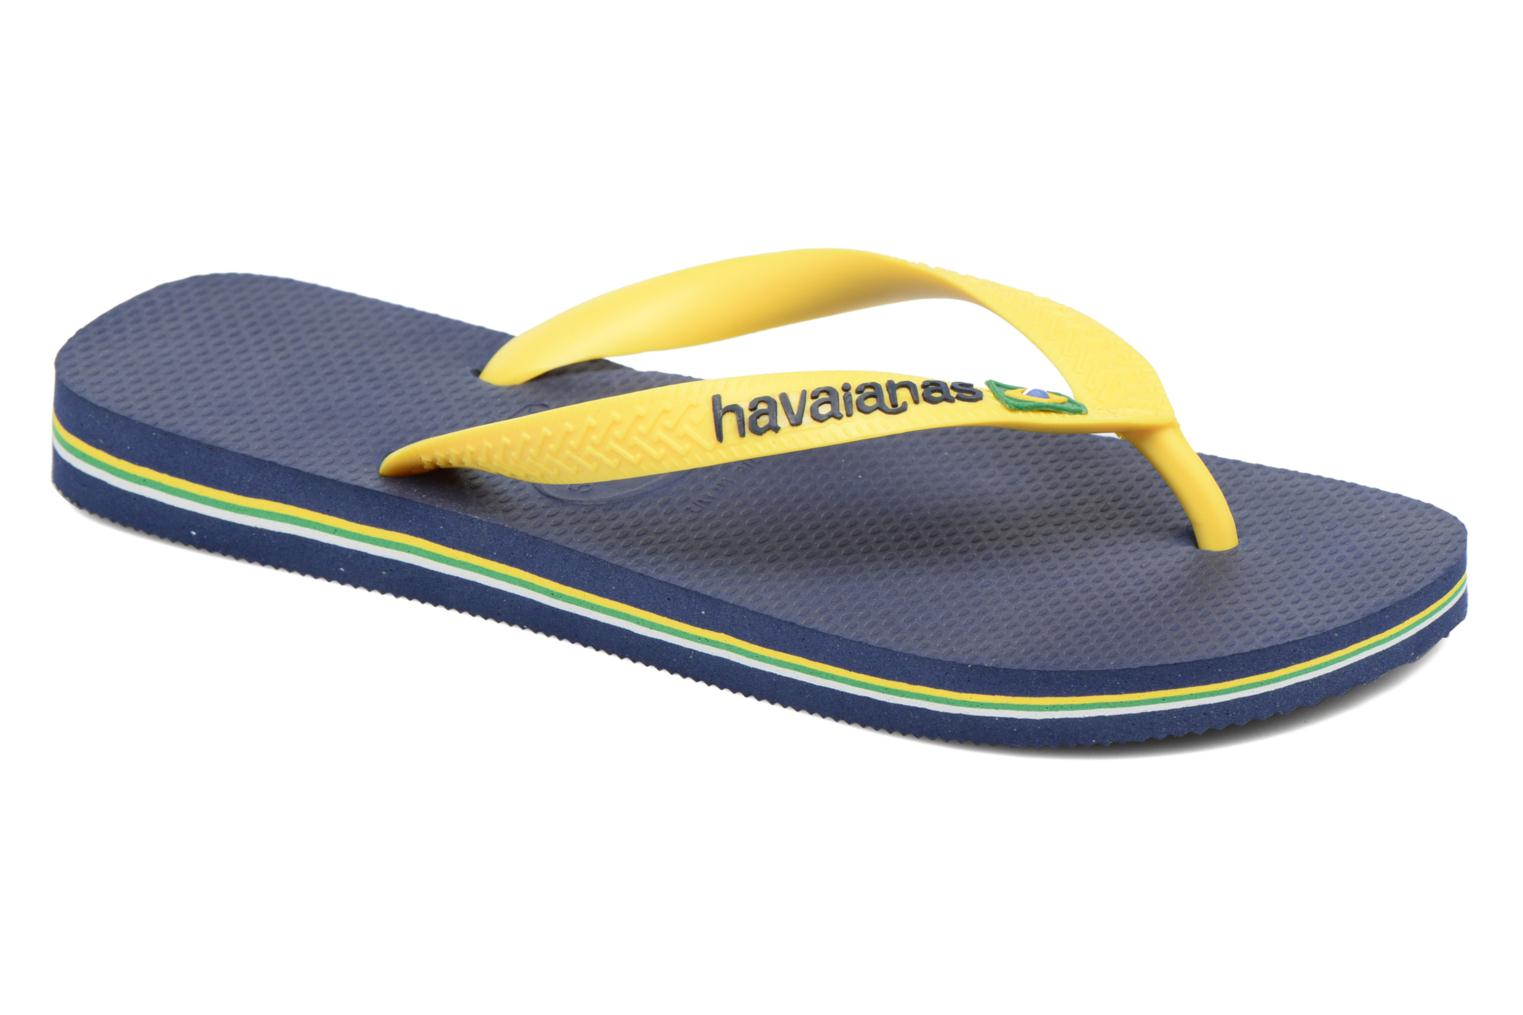 Brazil Logo H Navy Blue/citrus yellow